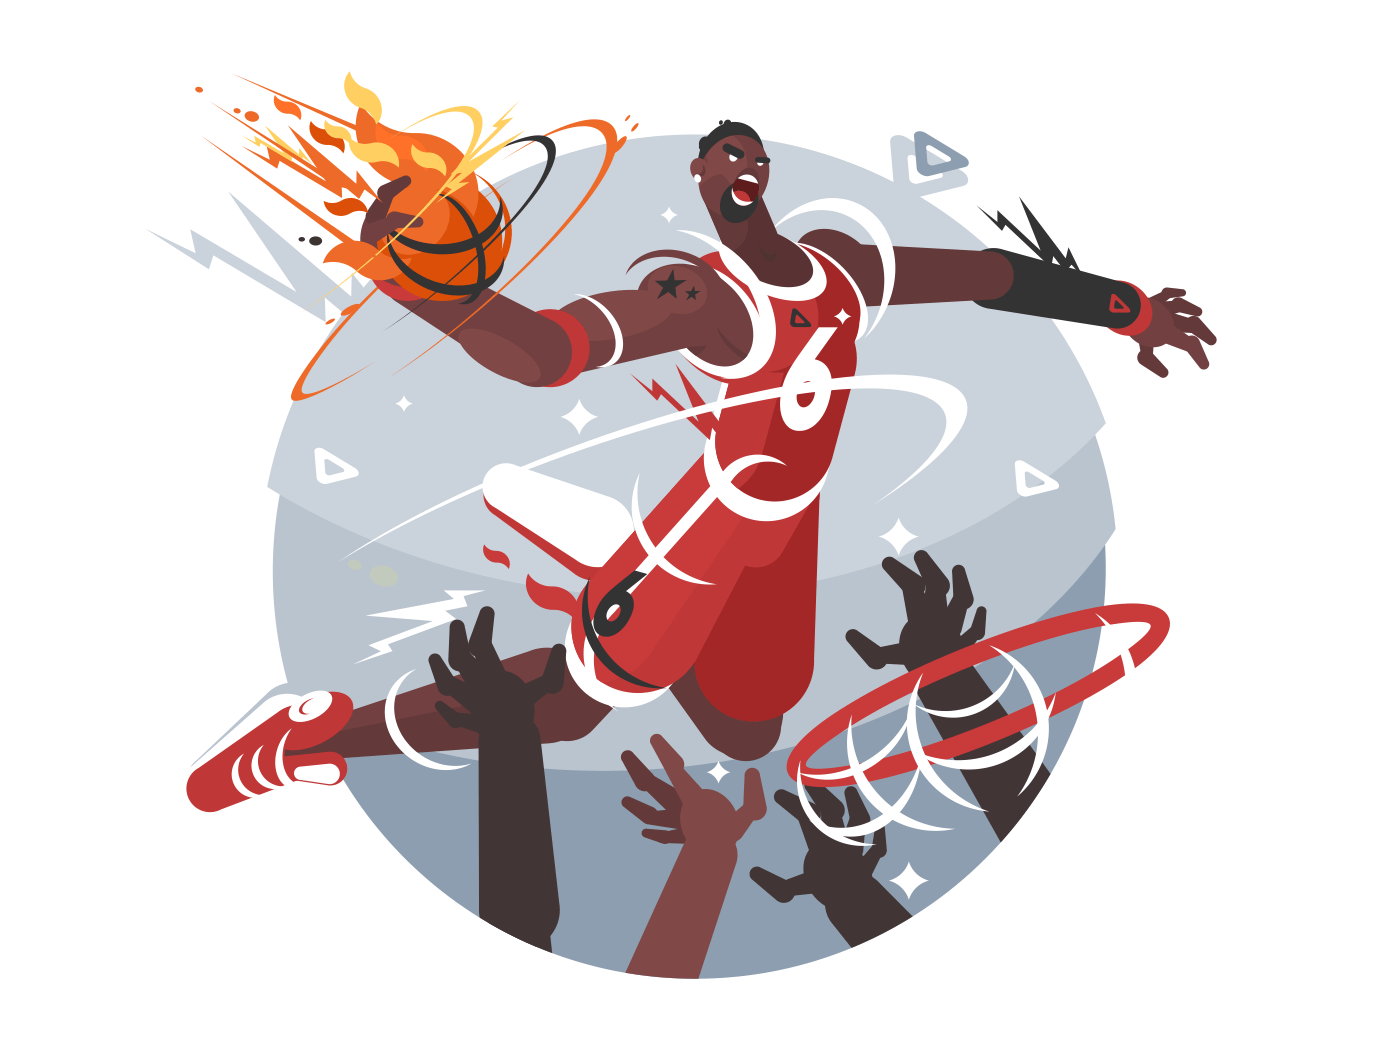 Basketball player with ball makes slam dunk. Vector flat illustration